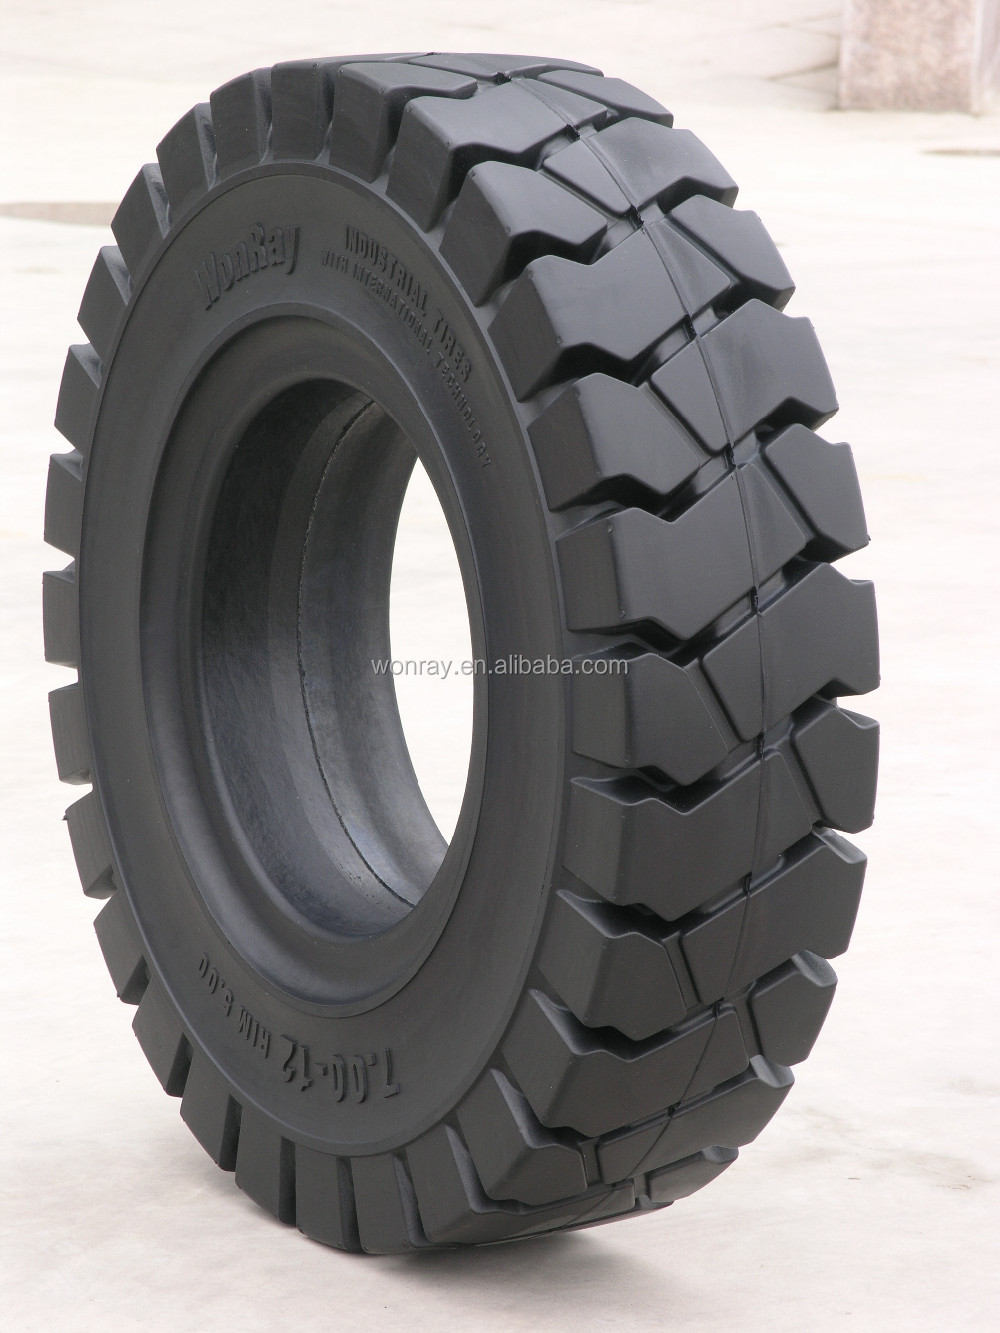 Rims For Cheap >> Top Quality Truck Solid Rubber Tire 445/65r22.5 1000-20 900-20 With Cheap Price - Buy Truck Tire ...